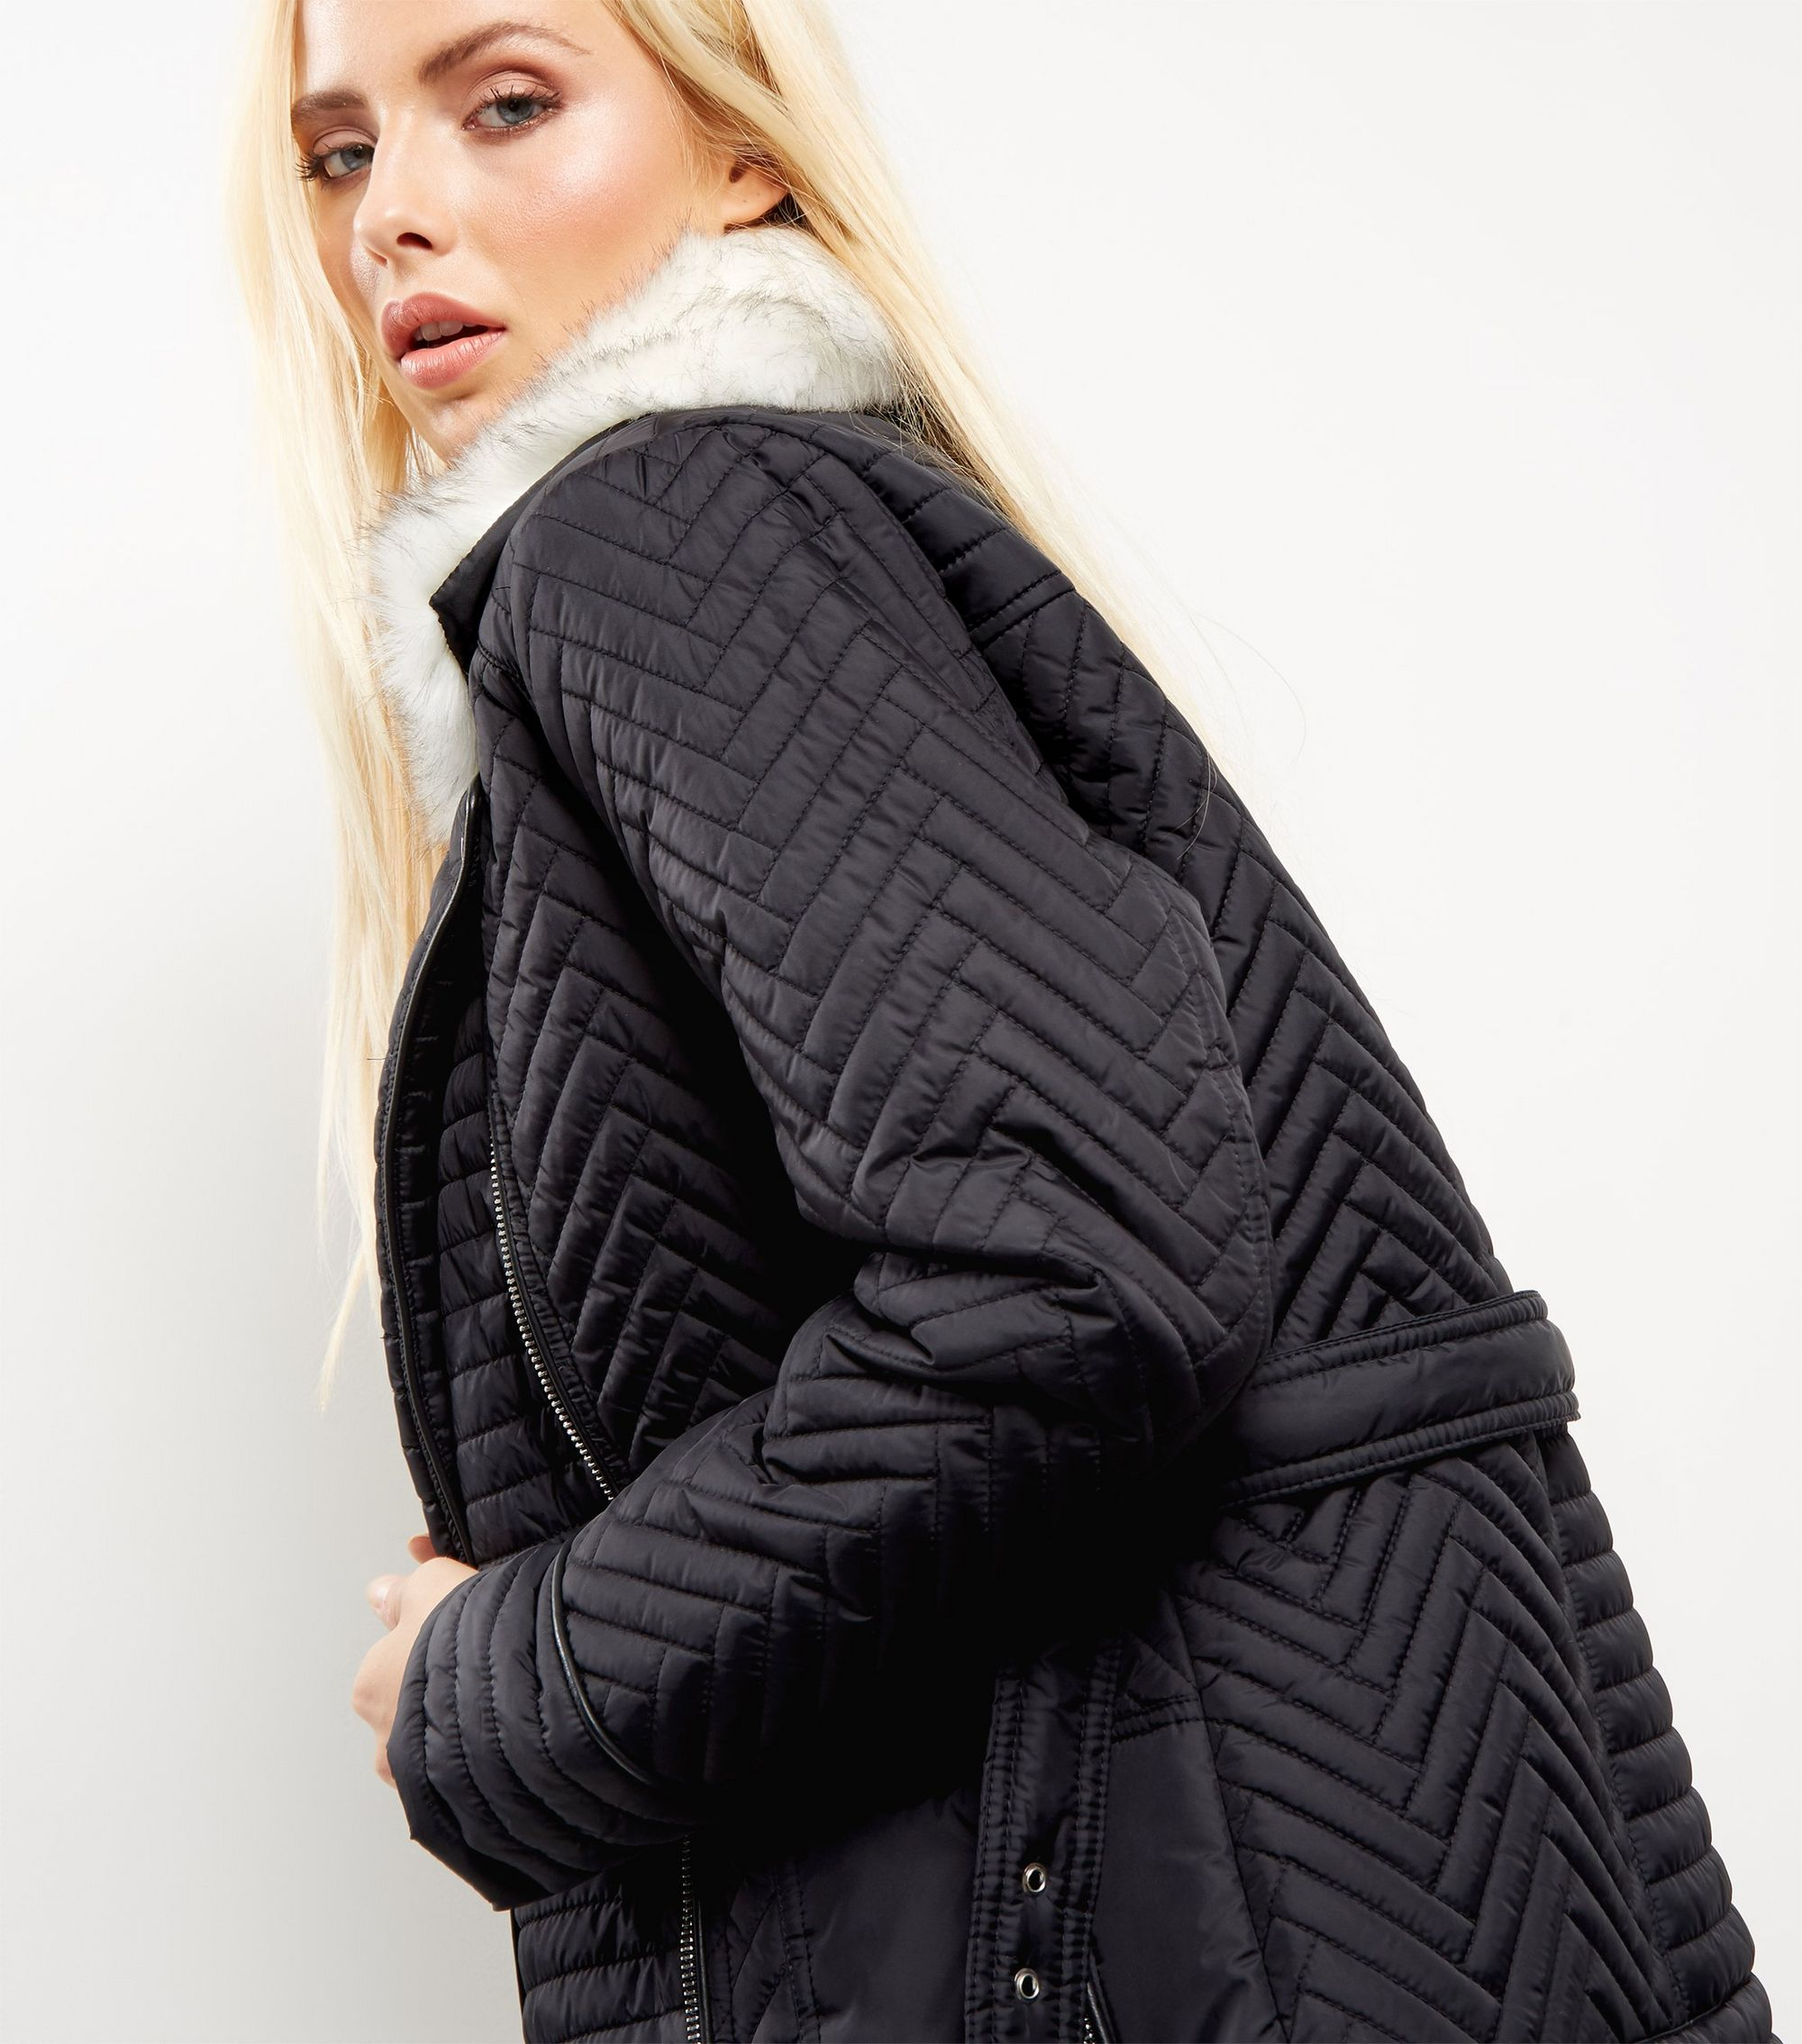 http://media.newlookassets.com/i/newlook/381107601/womens/jackets-and-coats/biker-jacket/black-leather-look-faux-fur-trim-quilted-biker-jacket/?$new_pdp_szoom_image_2000$